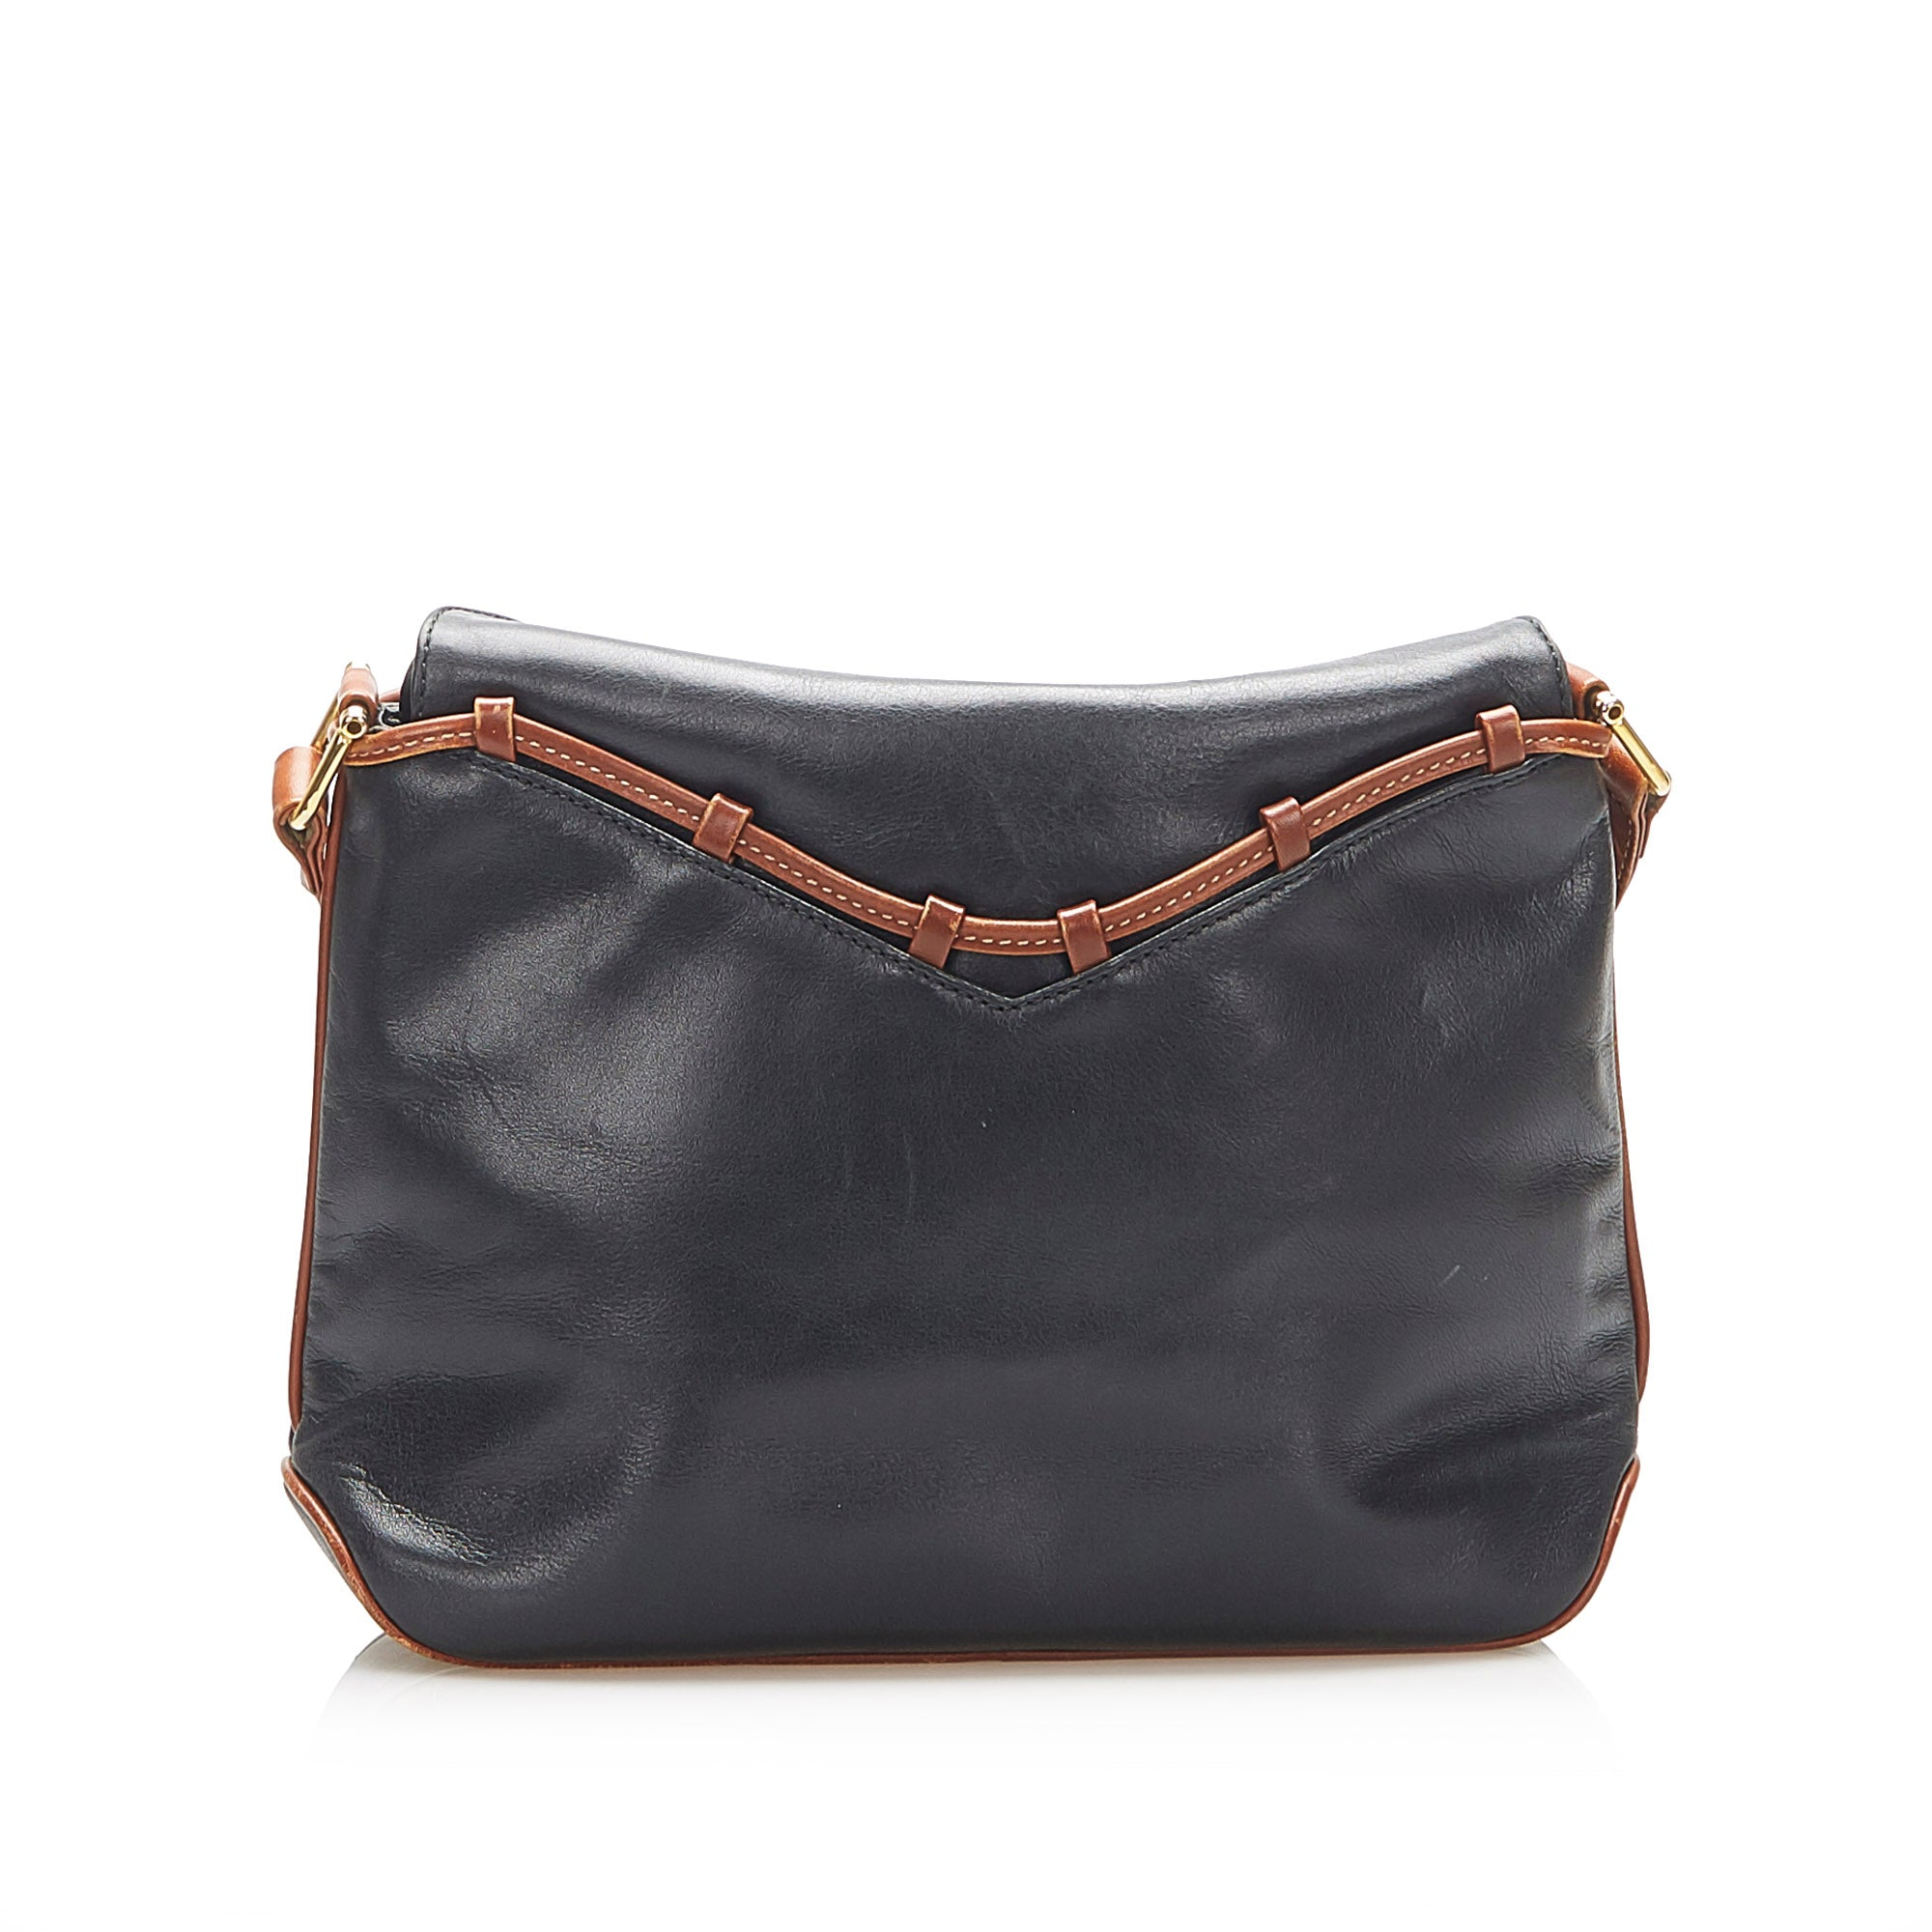 Celine Black Leather Crossbody Bag